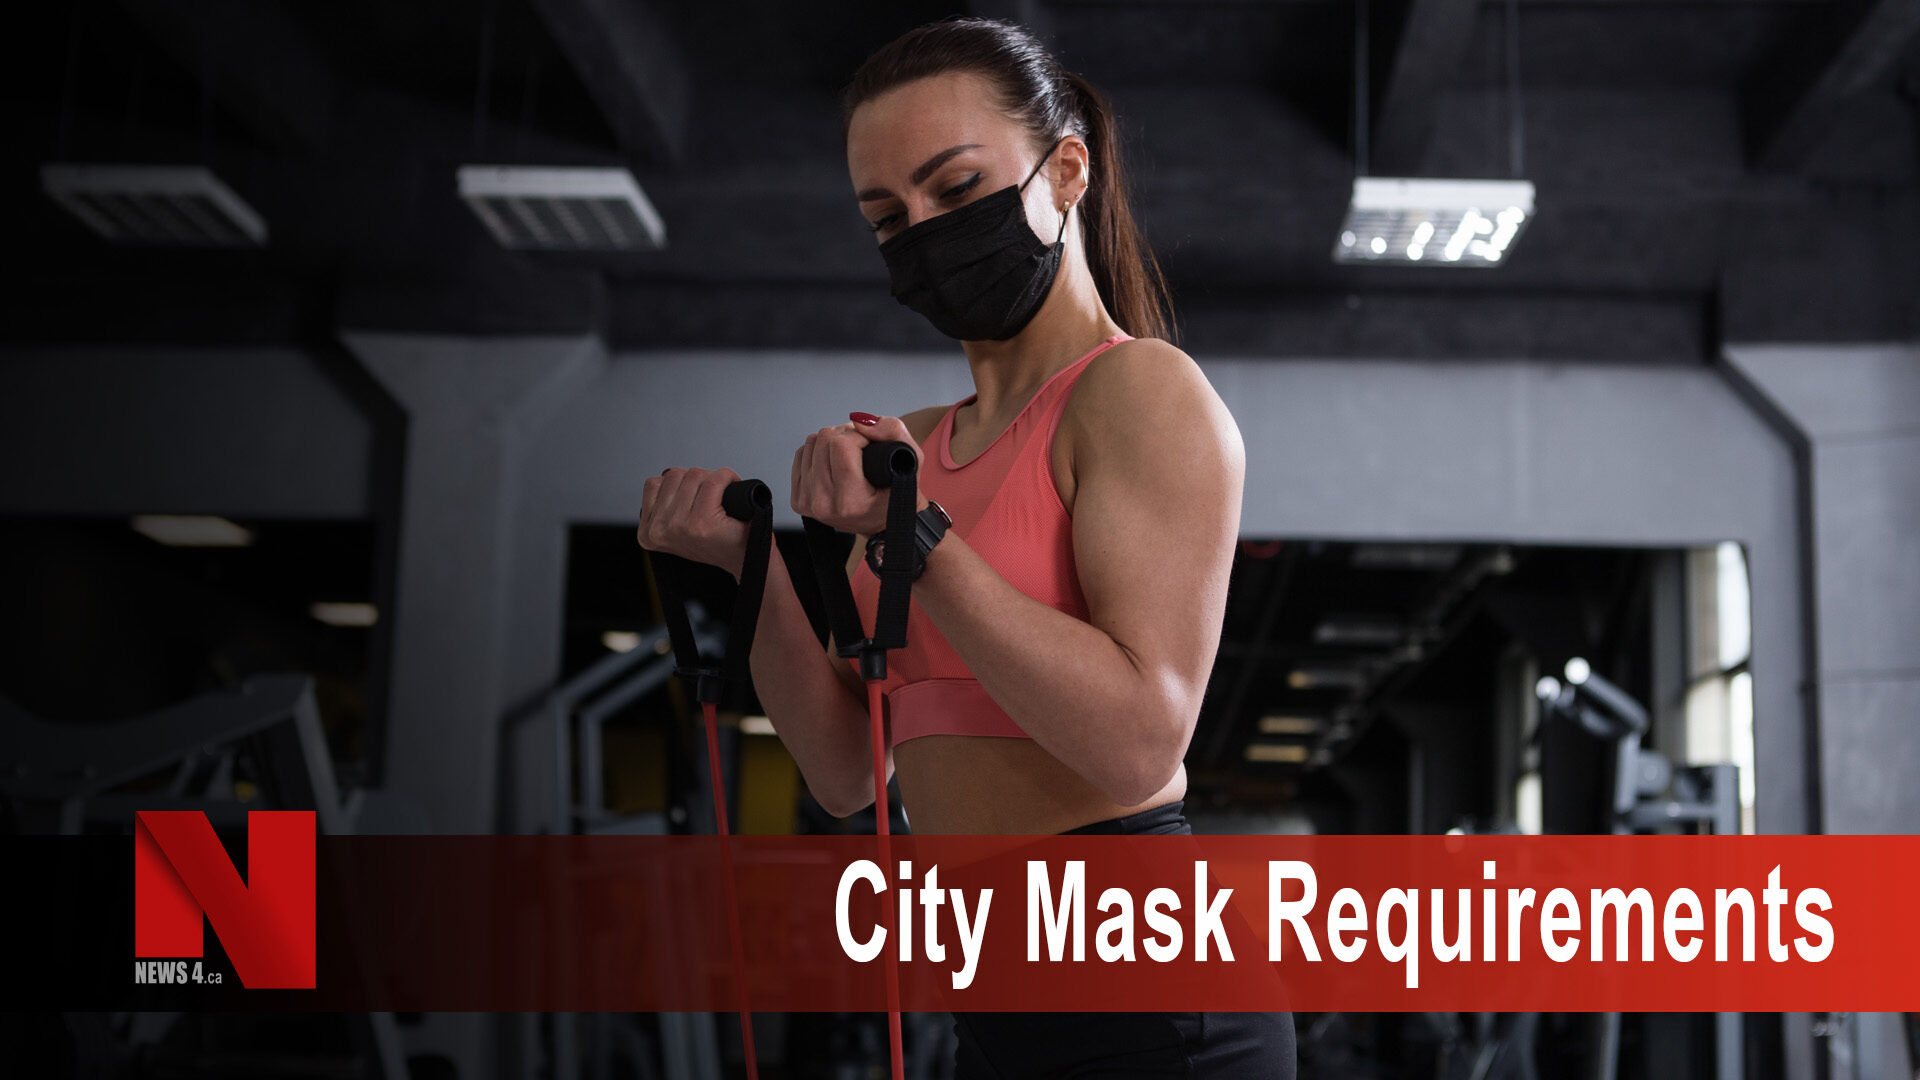 City Mask Requirements